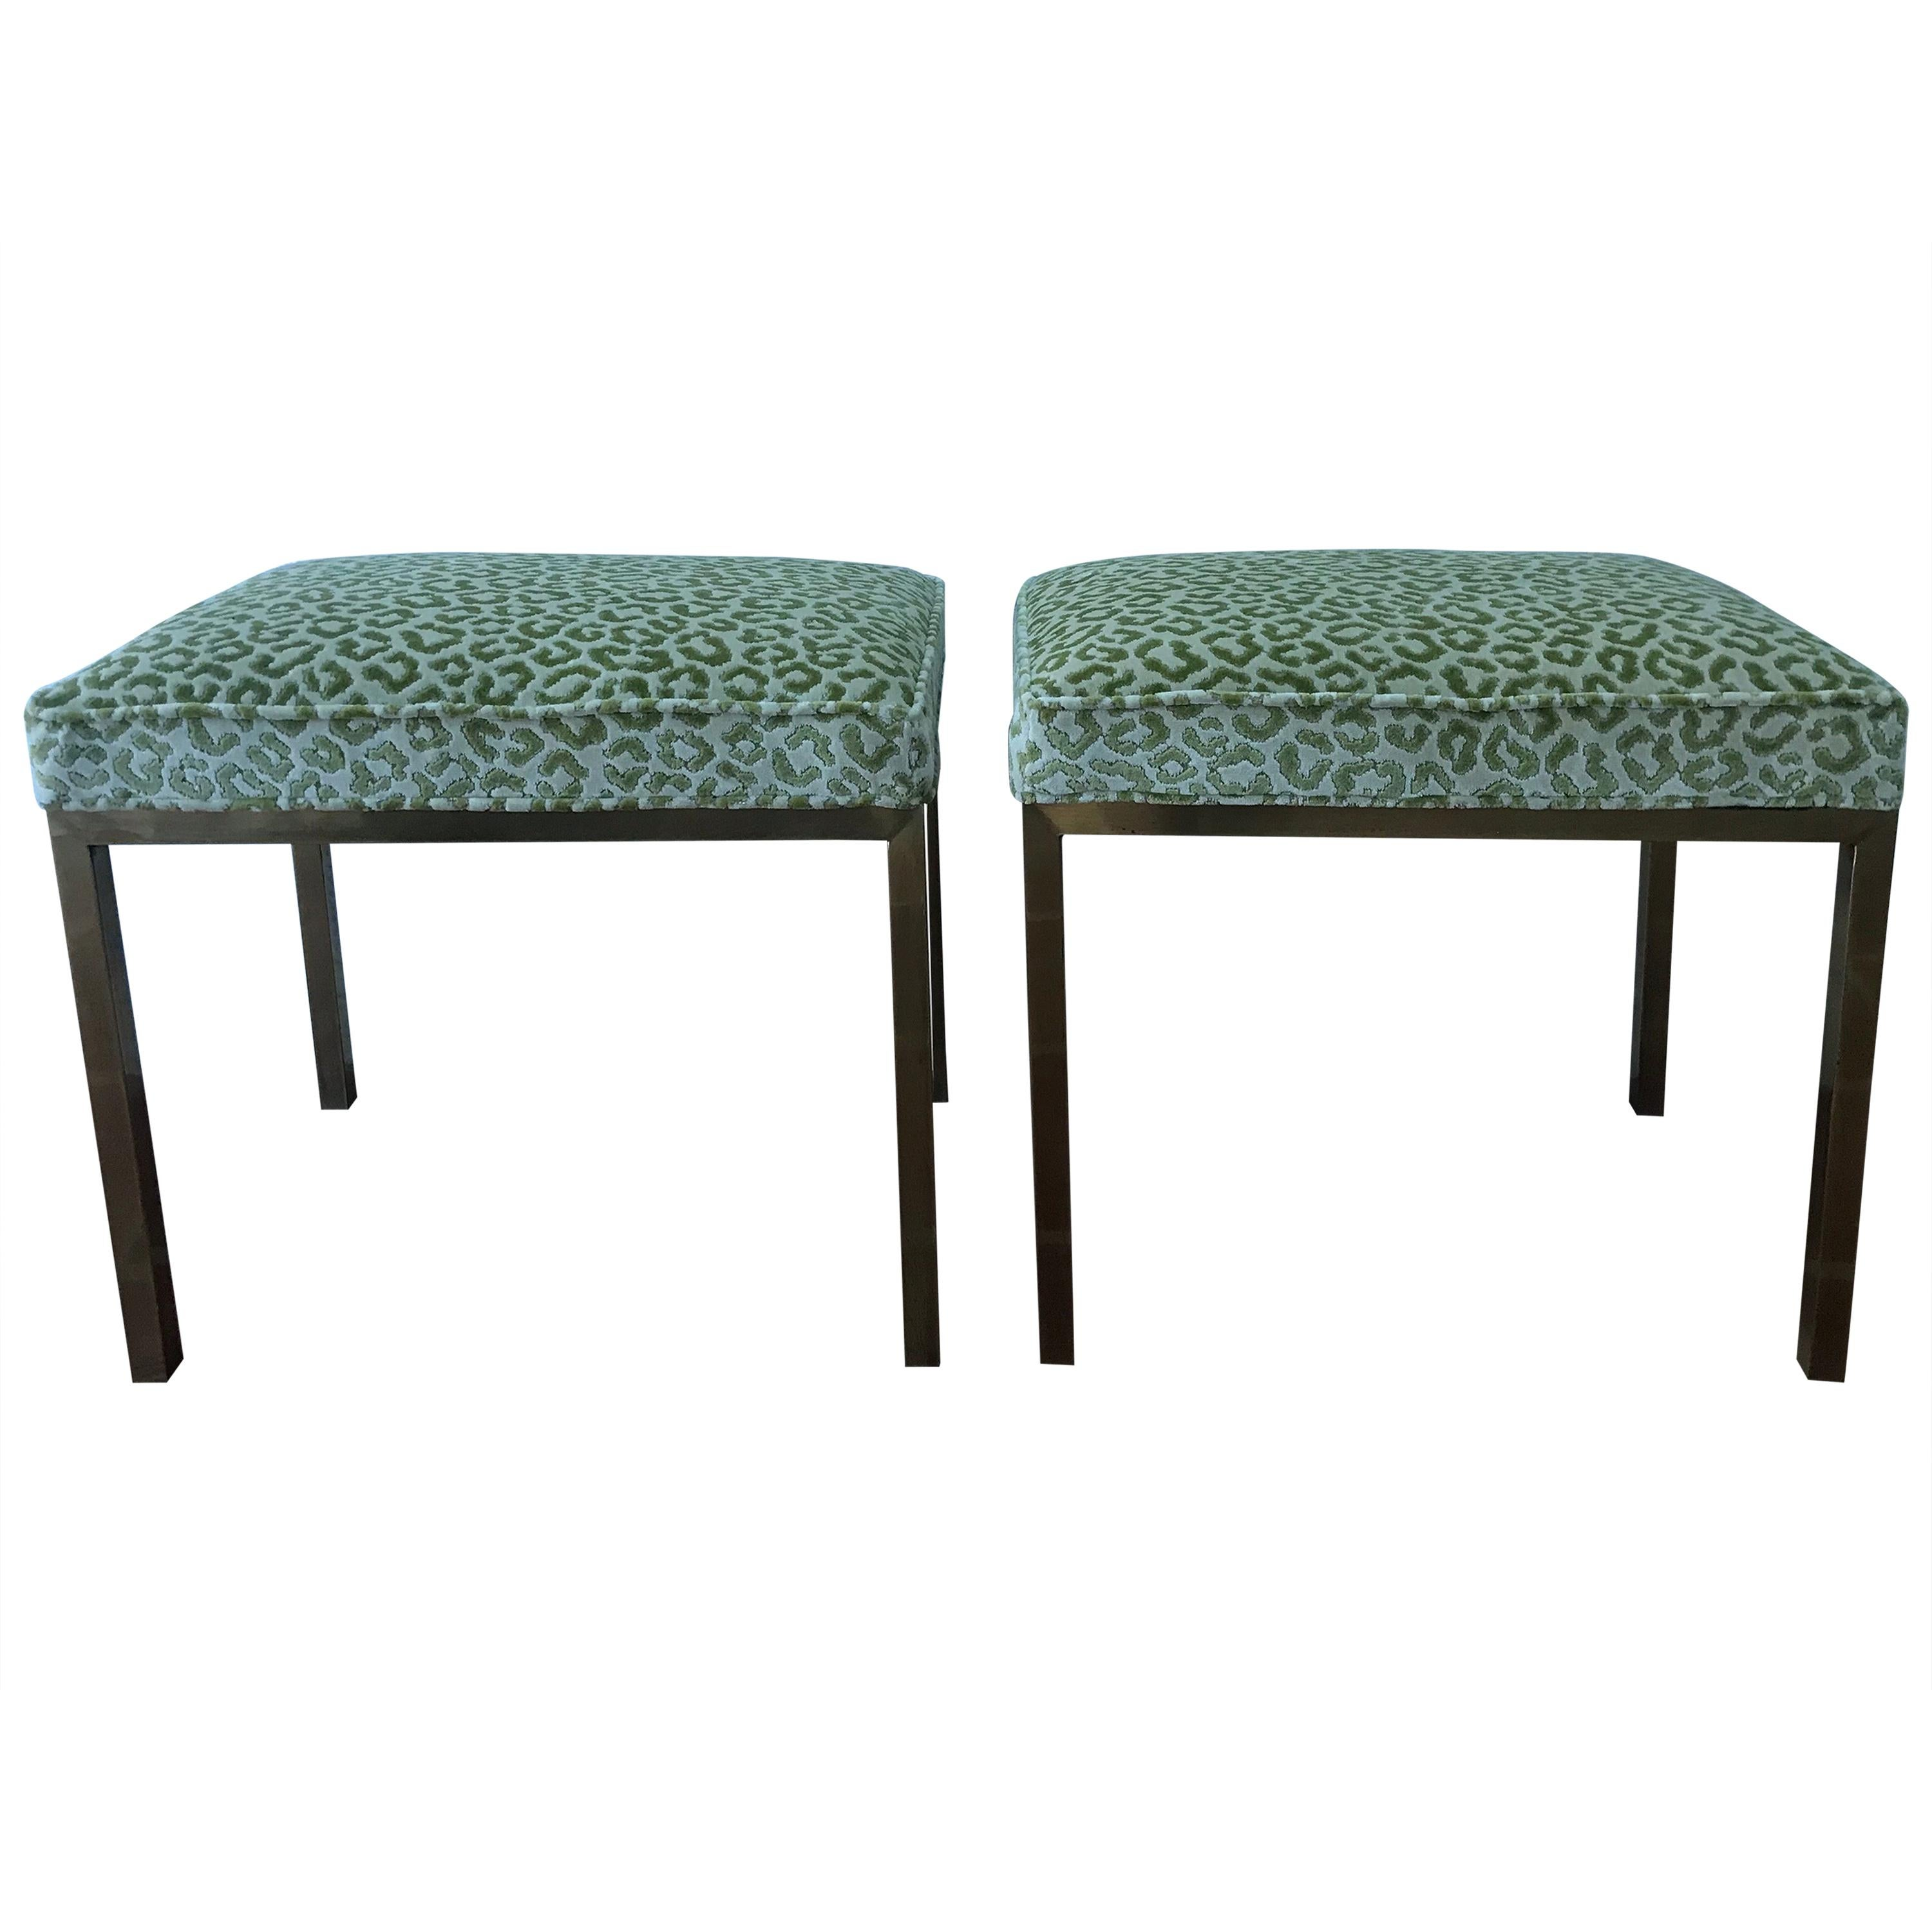 Mastercraft Pair of Brass Upholstered Benches